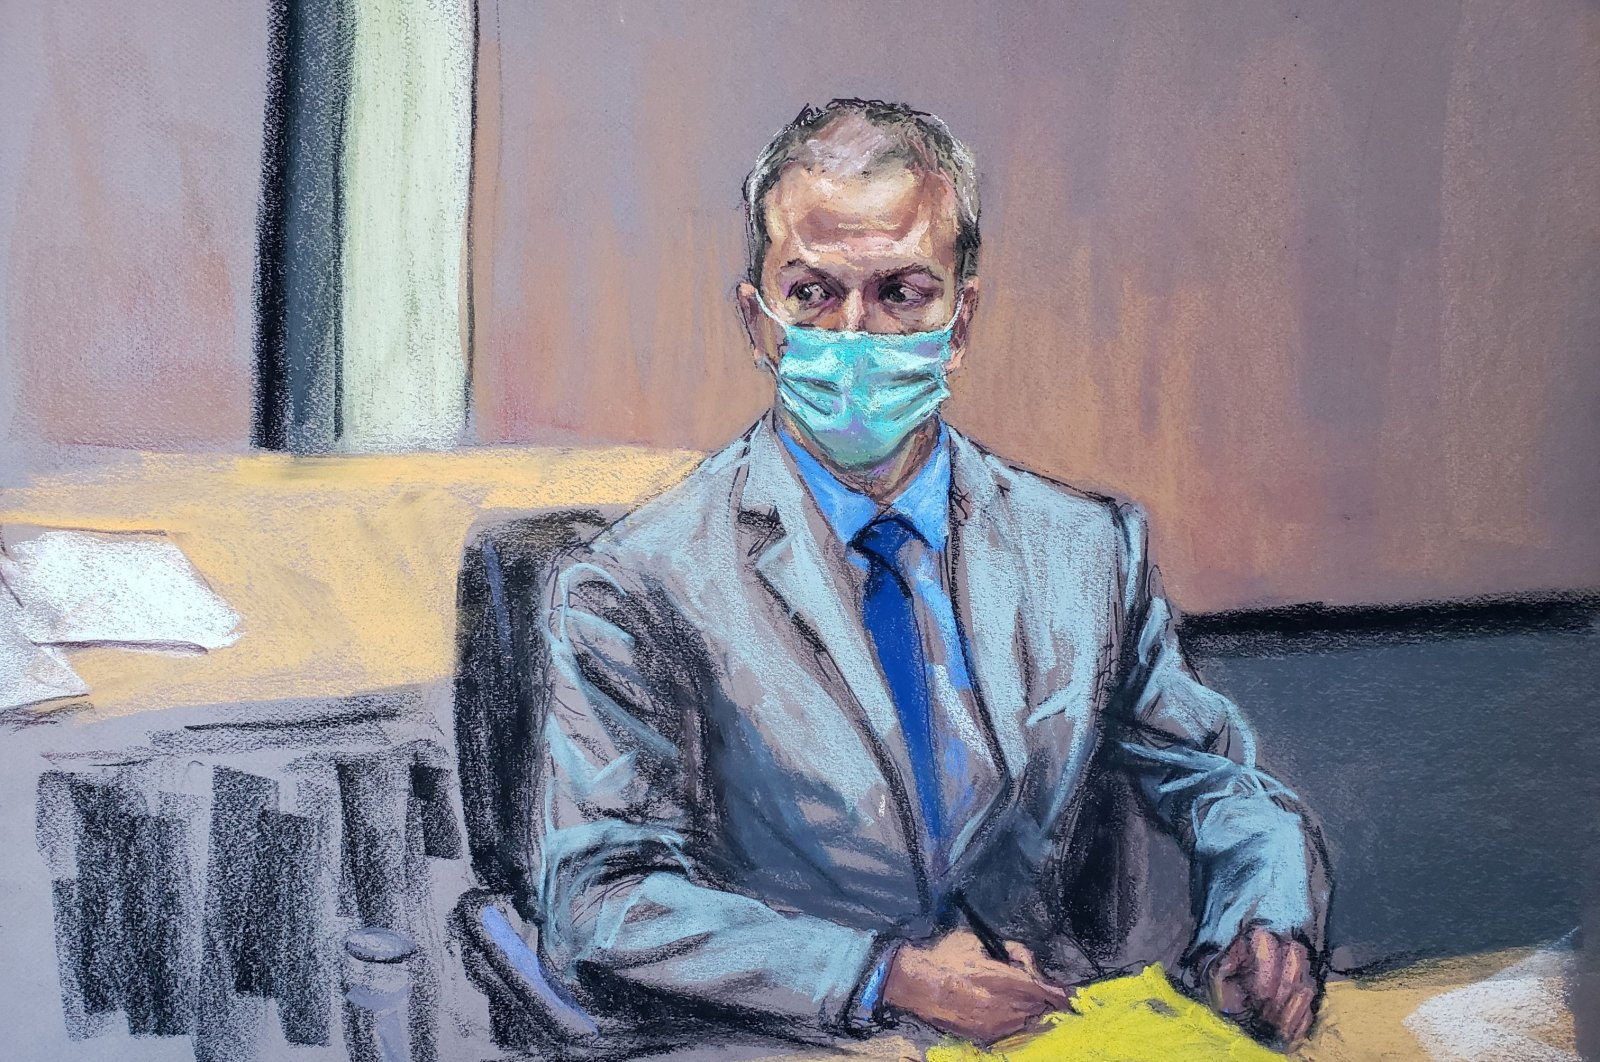 In this courtroom sketch, former Minneapolis police officer Derek Chauvin listens during the seventh day of his trial for second-degree murder, third-degree murder and second-degree manslaughter in the death of George Floyd in Minneapolis, Minnesota, the U.S., April 6, 2021. (Reuters Photo)